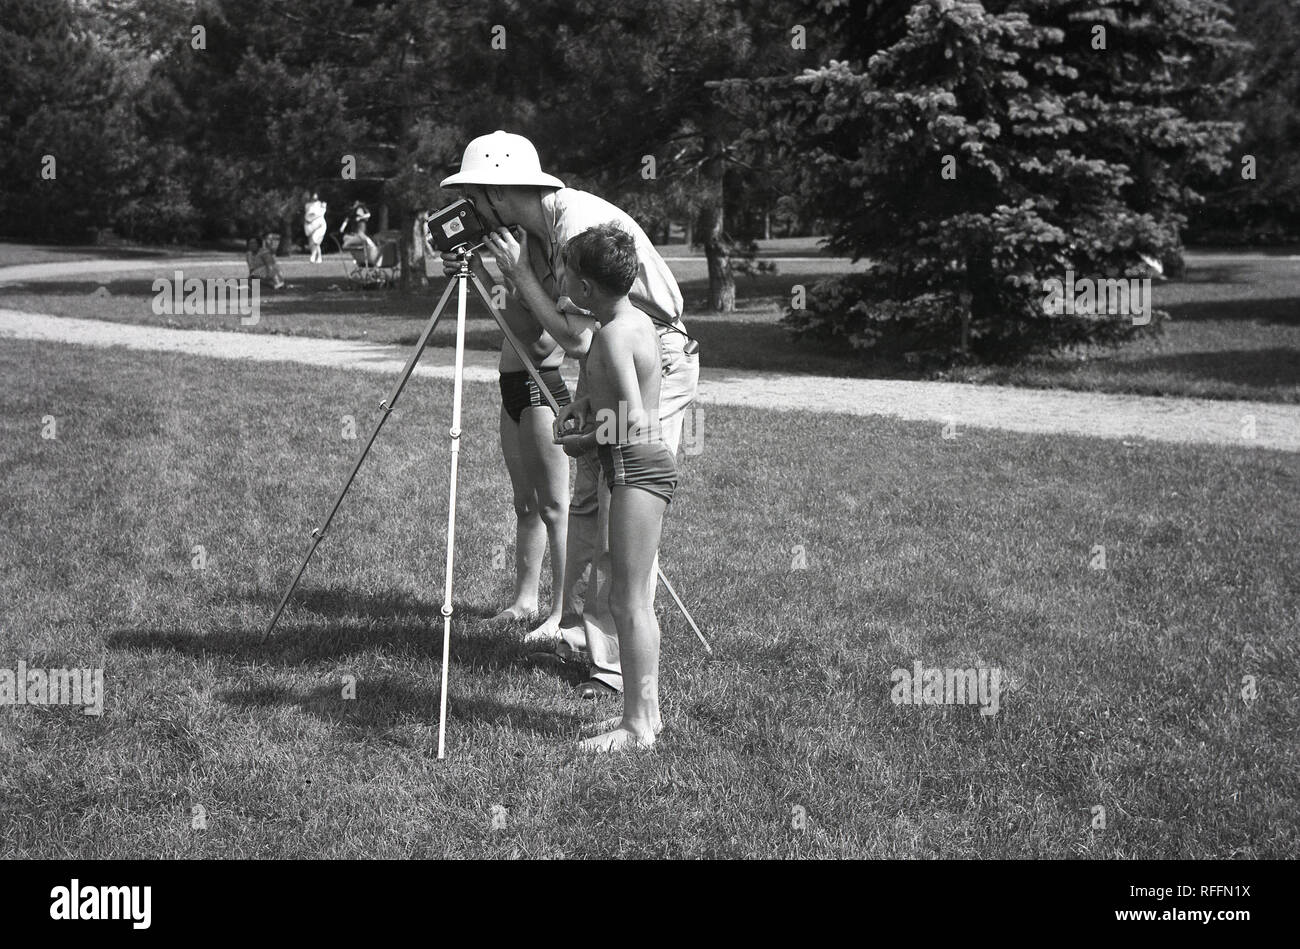 1950s, historical, two young boys in swimming costumes stand by a man with a tripod filming with a home movie film or cine-camera in a park. In this era. filming or recording family moments with a small portable cine camera was a popular hobby and there were many different formats and cameras available. - Stock Image